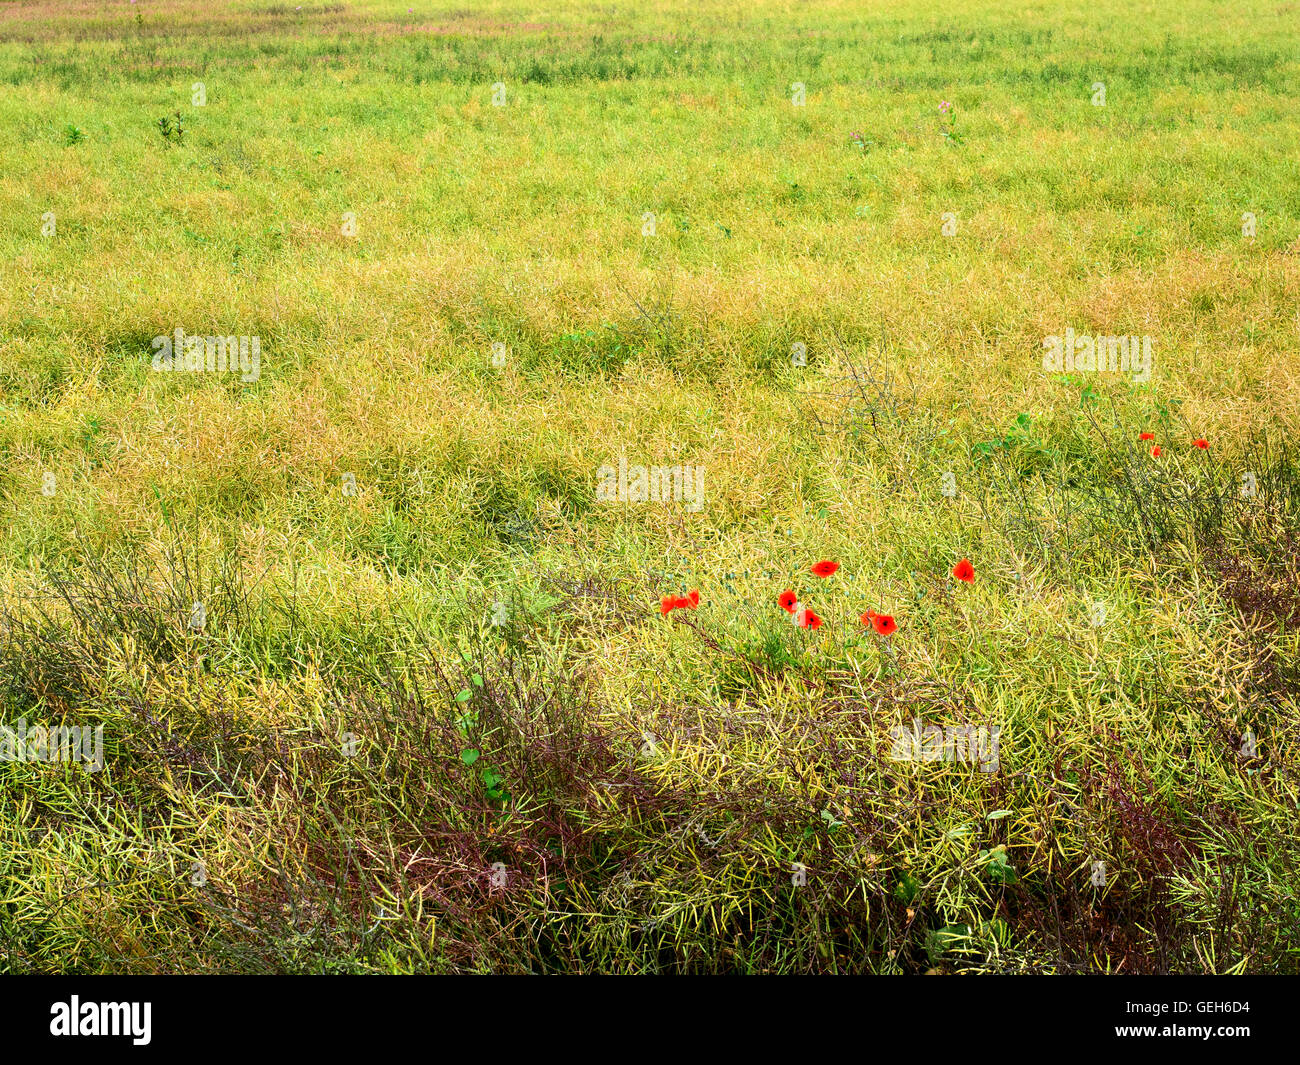 Poppies amongst a Crop in a Field at Aldborough near Boroughbridge North Yorkshire England - Stock Image